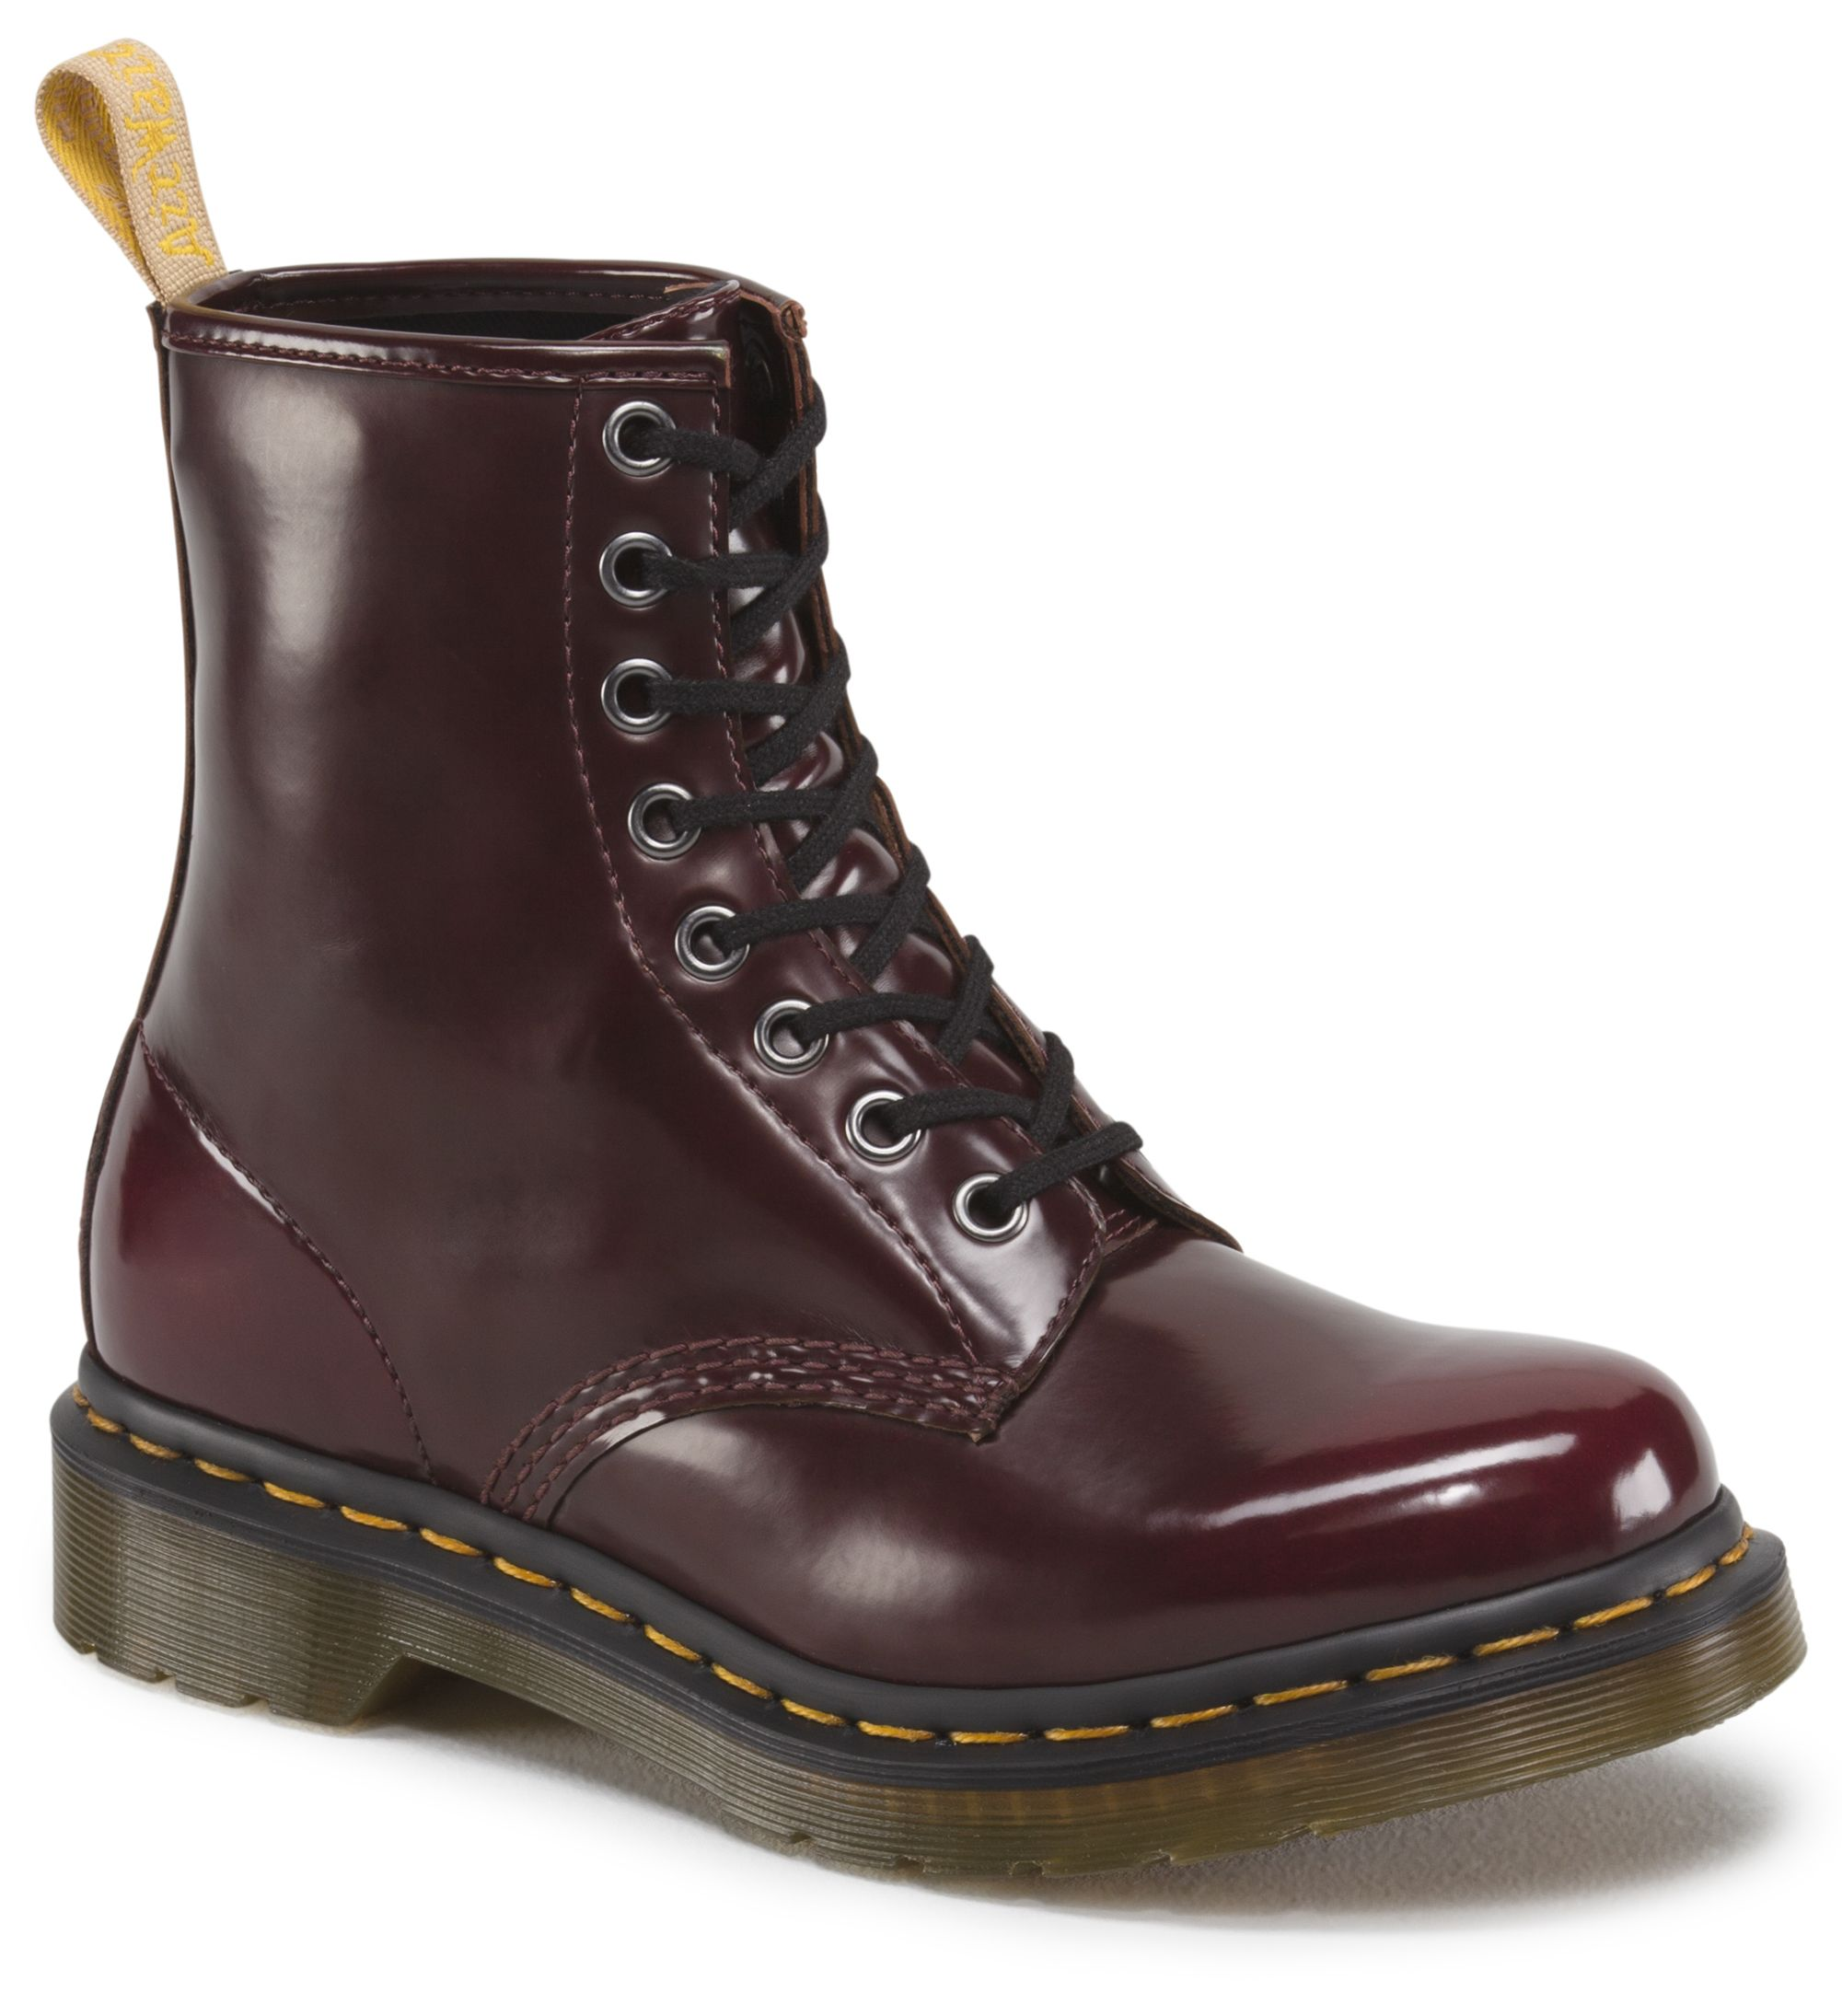 Dr. Martens Recalled Over Chemical Exposure Hazard